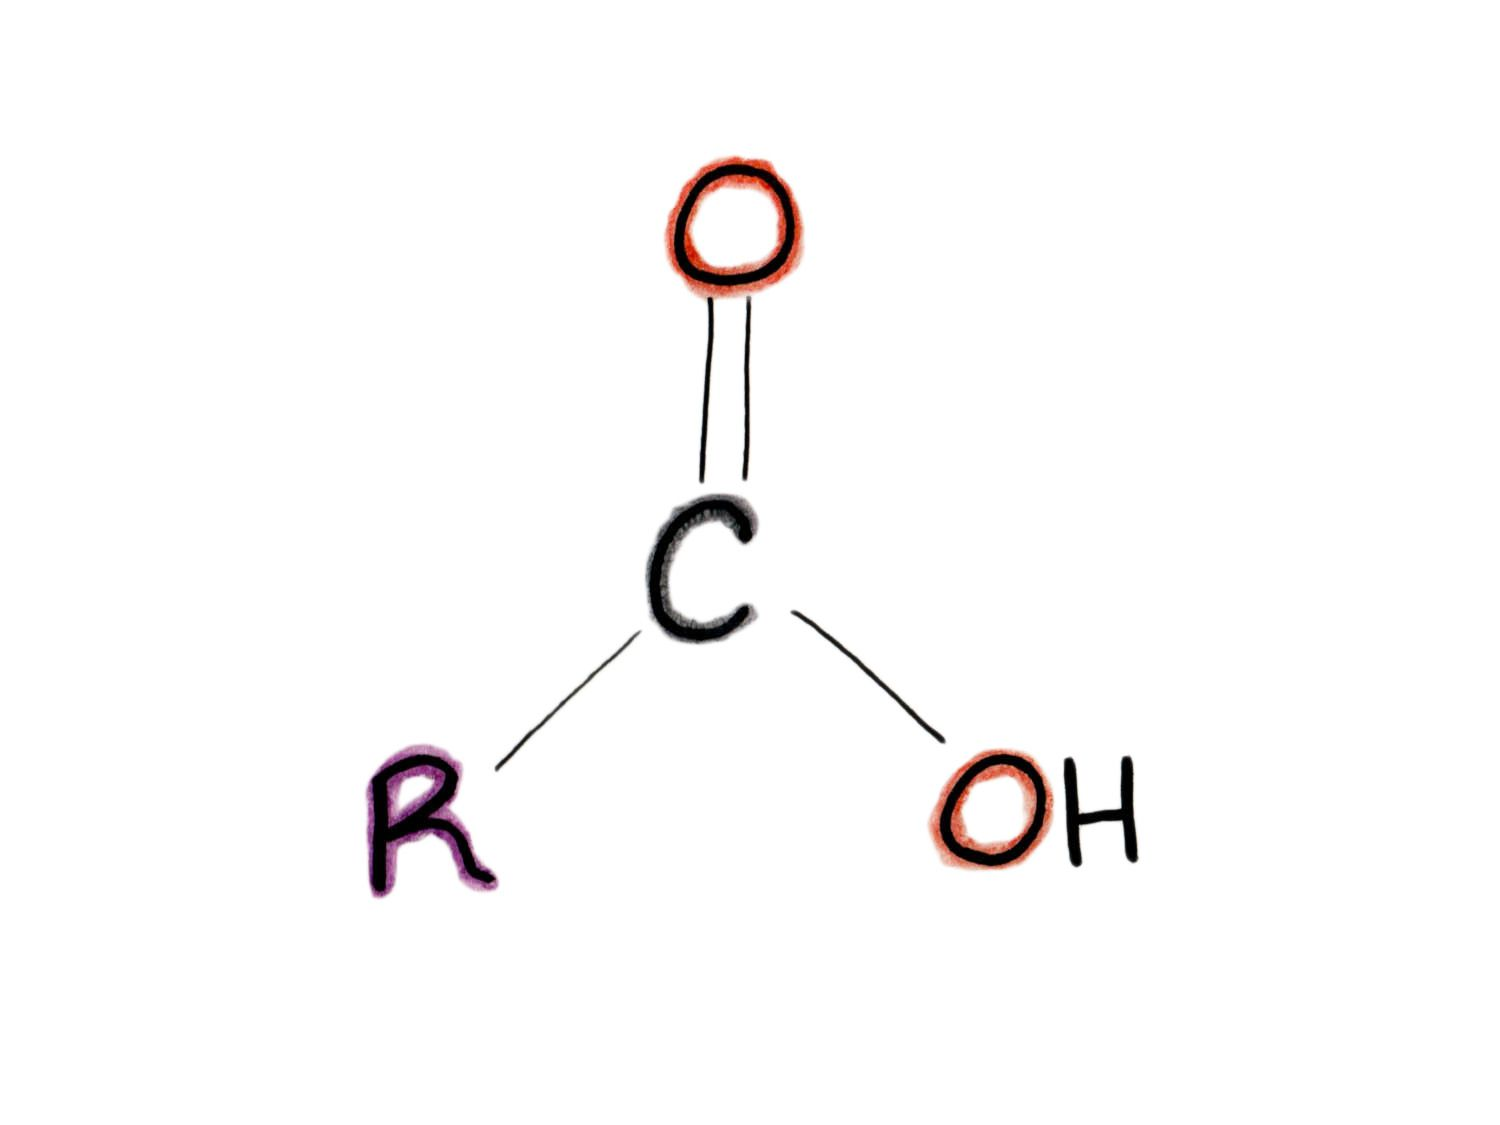 20140714-cream-science-what-happens-when-you-whip-it-claire-lower-carboxylic-acid.jpg